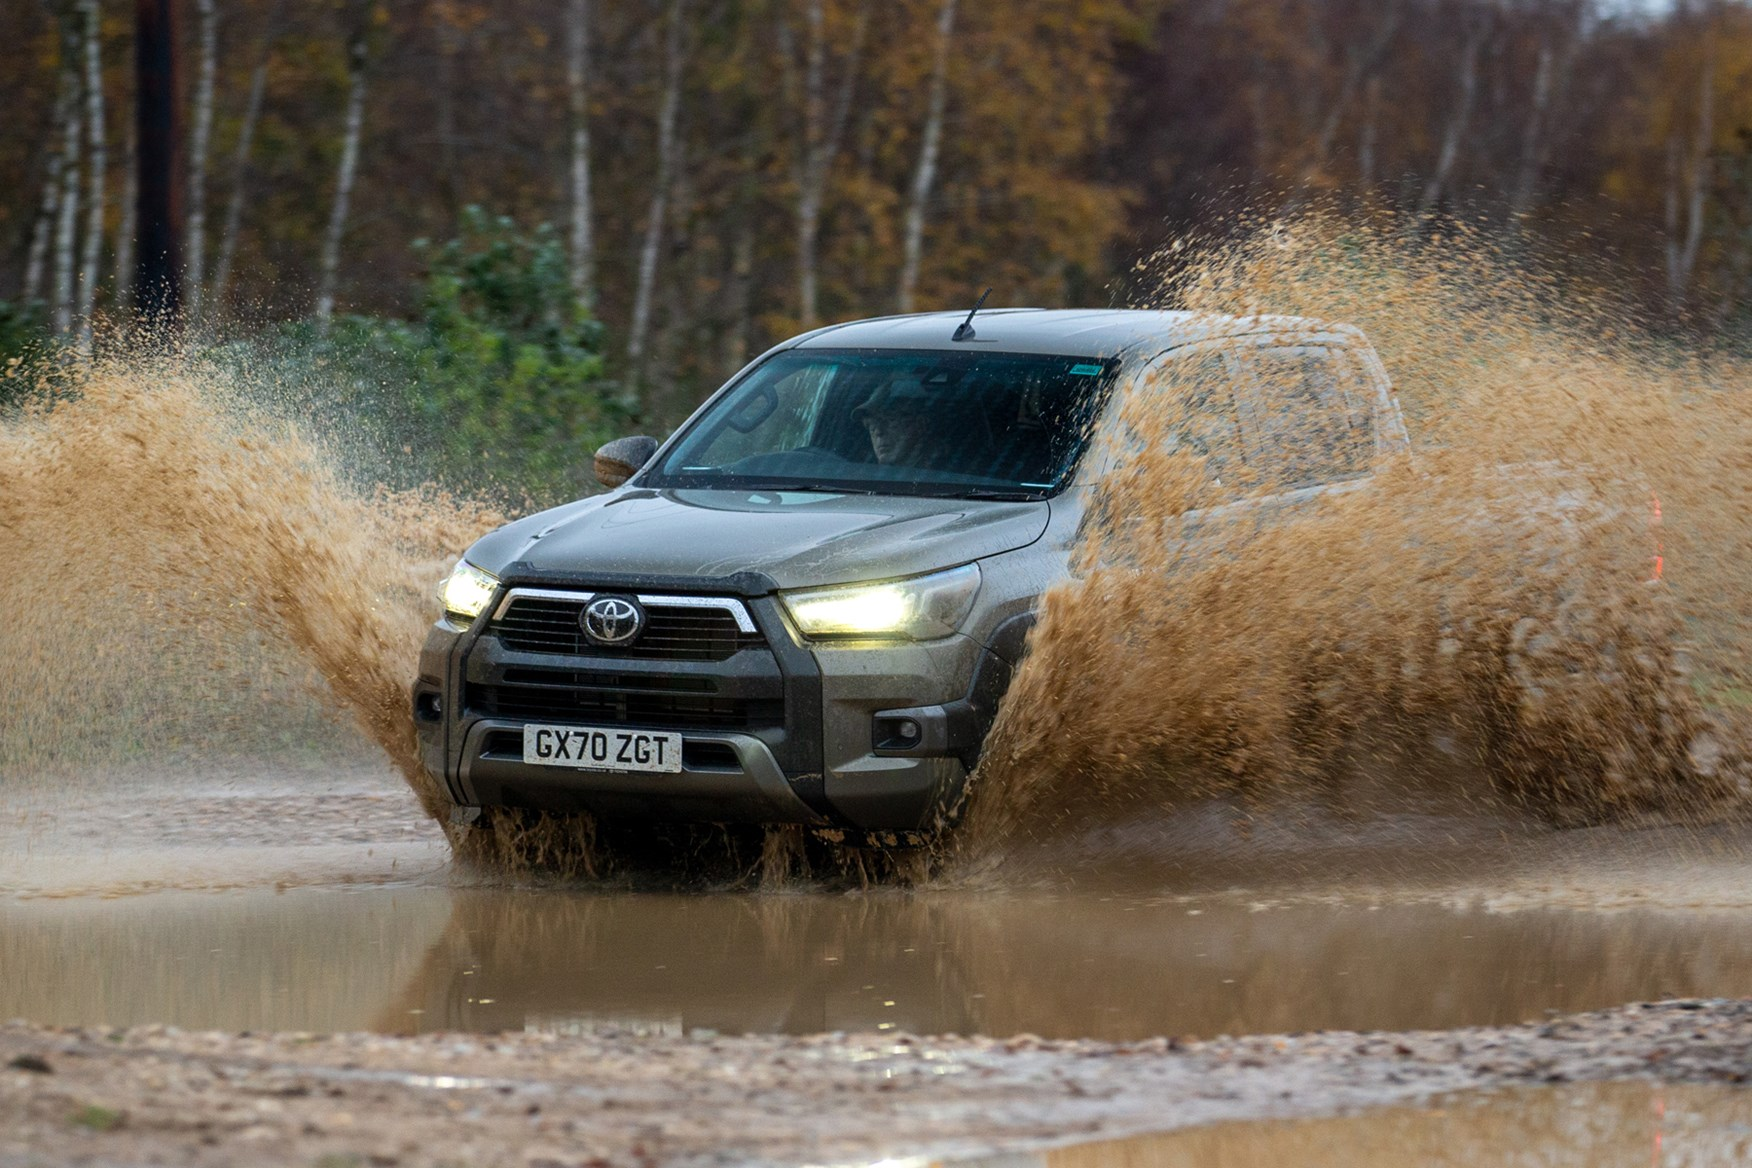 Toyota Hilux review, 2020 facelift, front view, big splash through muddy water, bronze